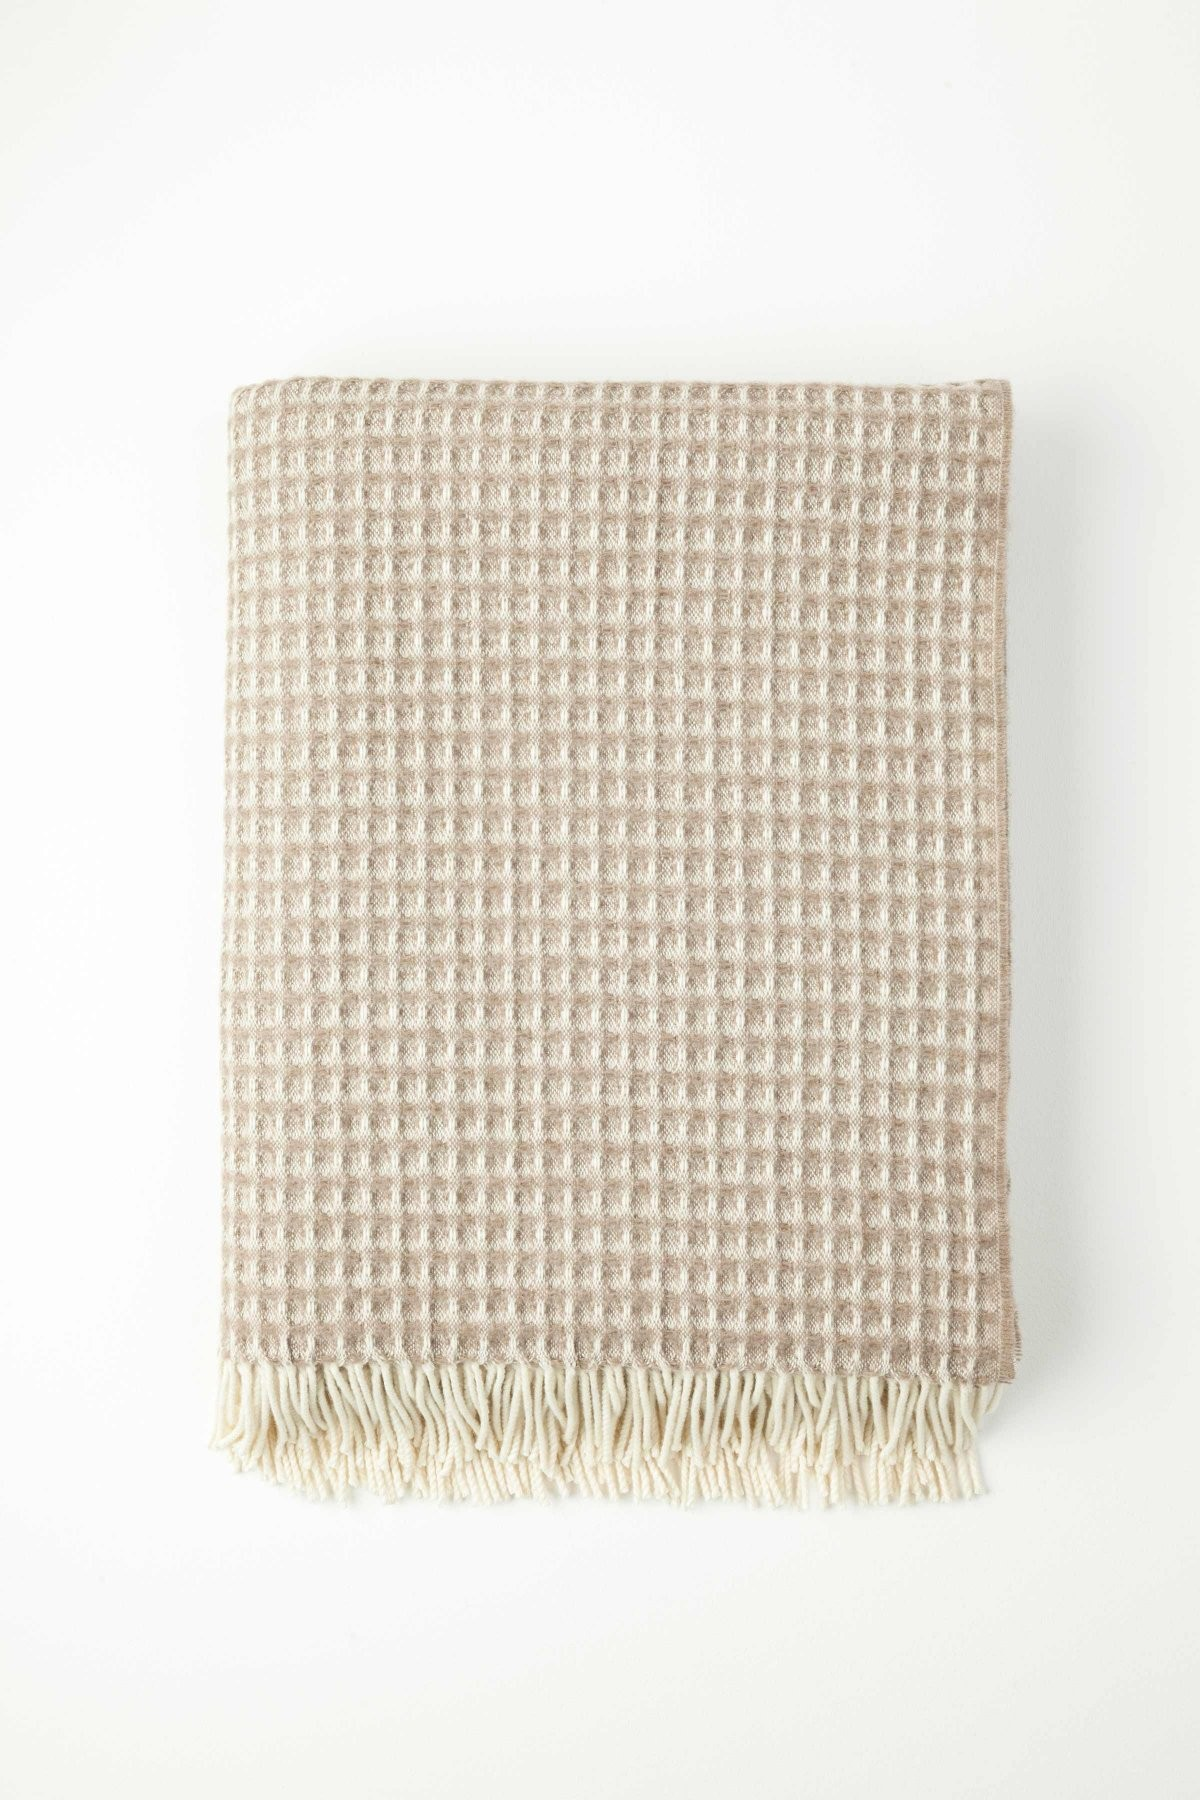 Johnston's of Elgin Cashmere Natural Honeycomb Throw - Natural Brown